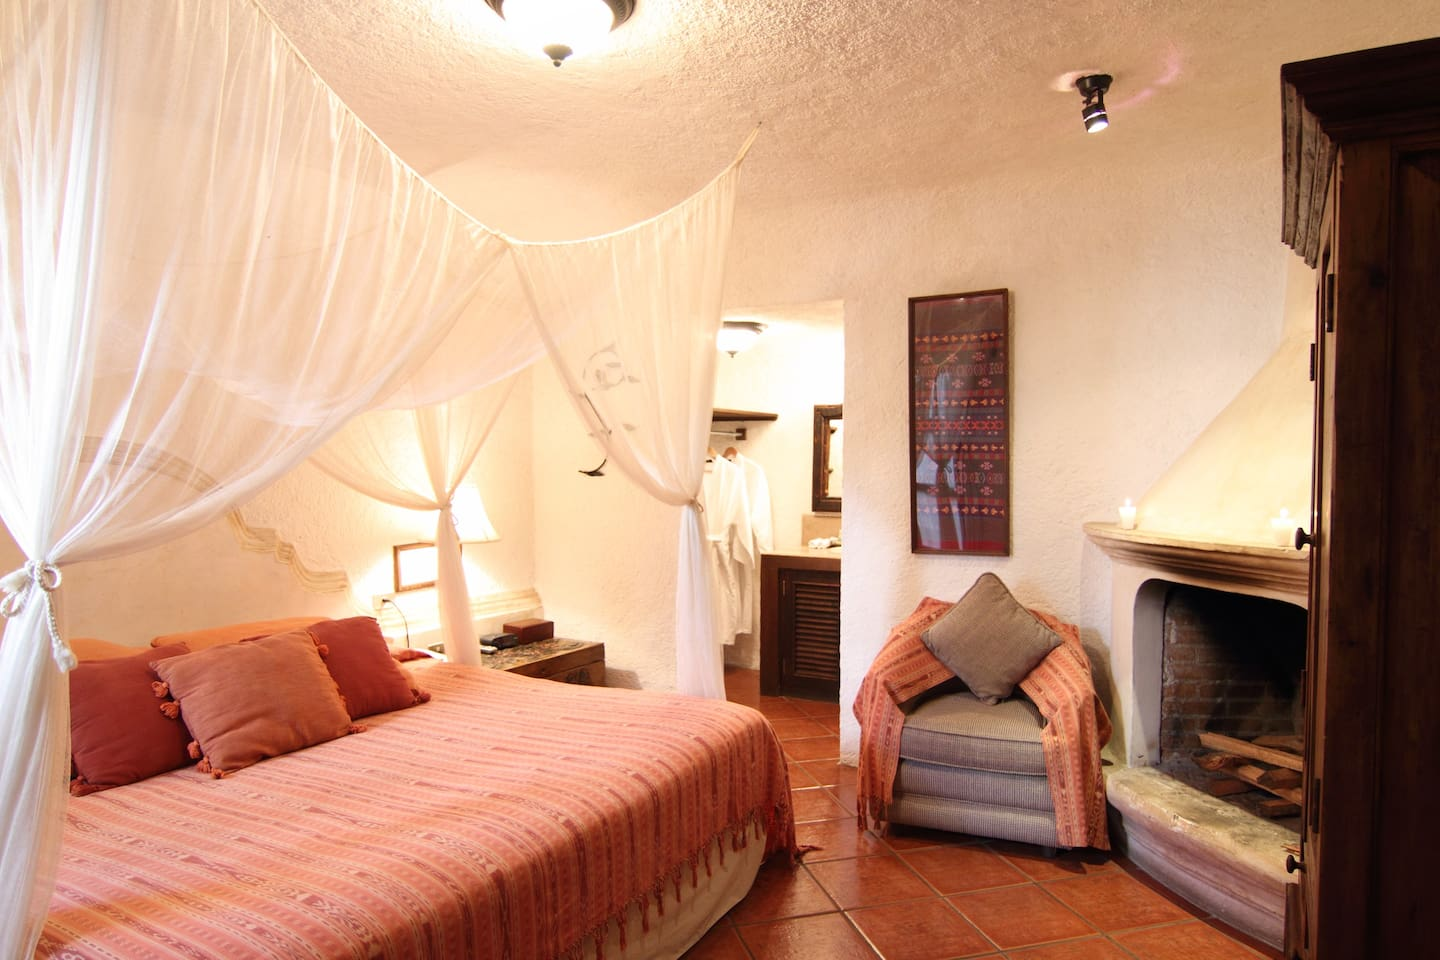 King size bed with canopy, private bathroom, fireplace.